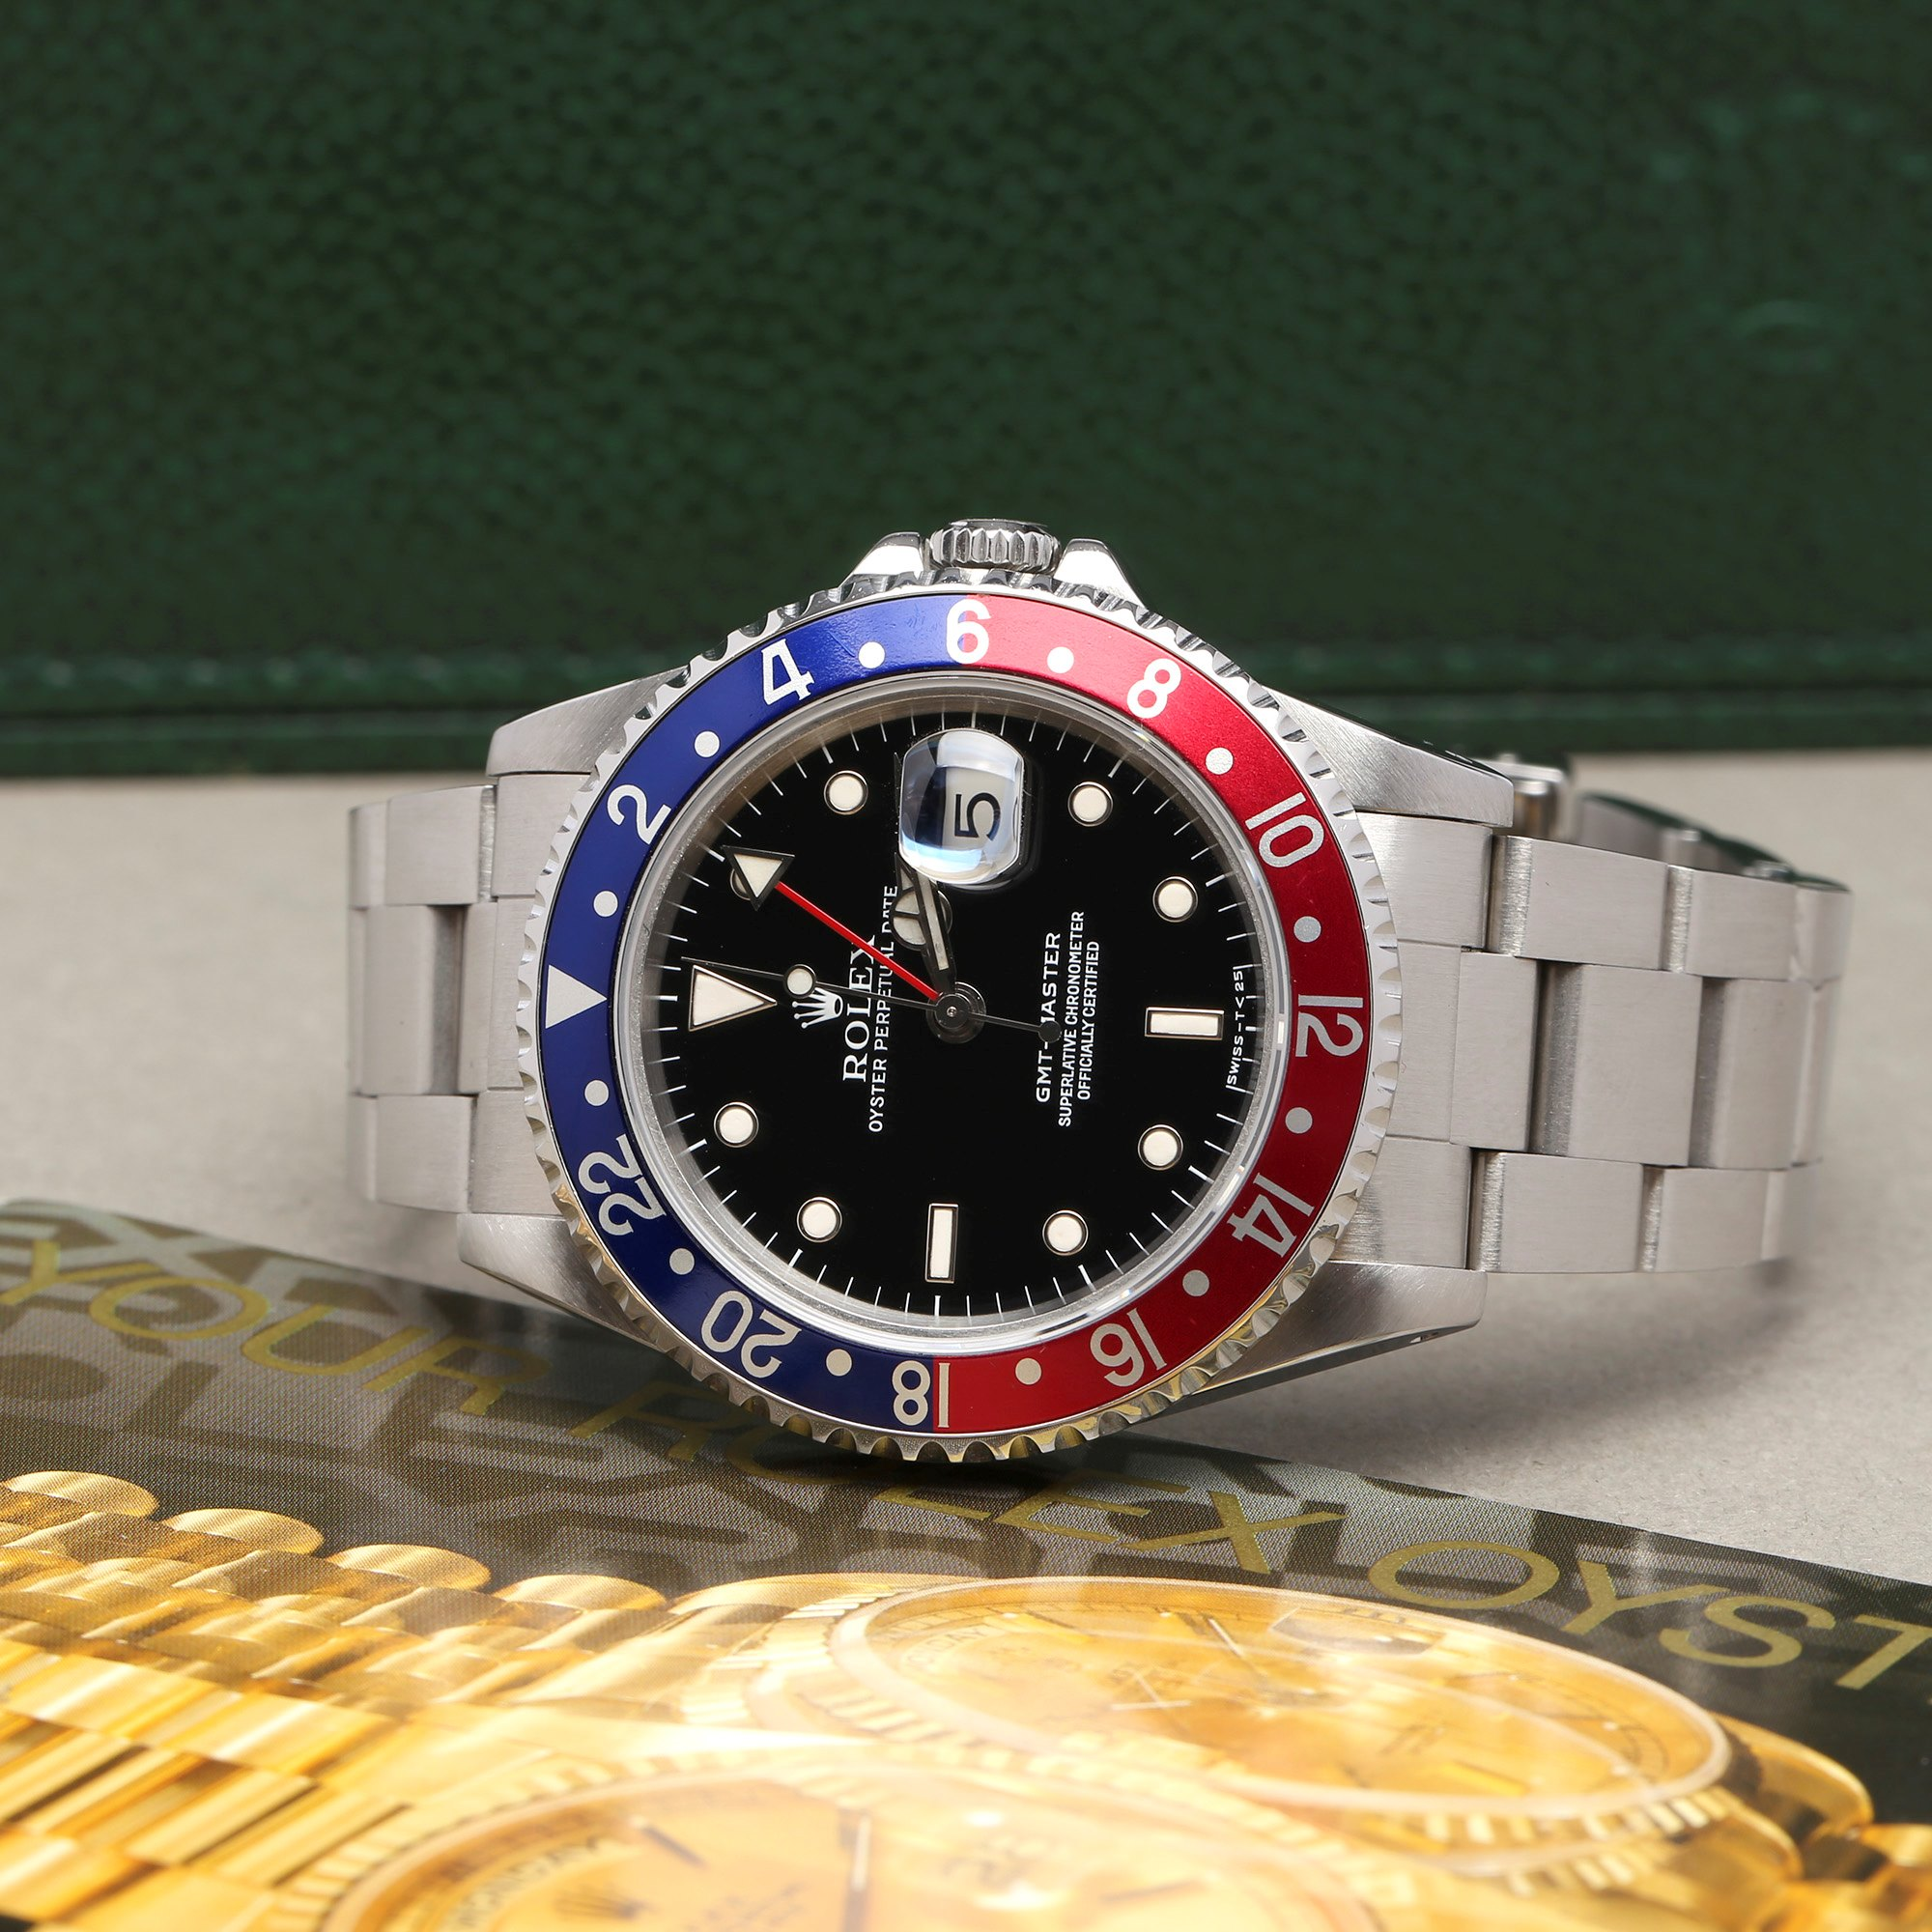 Rolex GMT-Master 16700 Men Stainless Steel Pepsi Serif Fat Font Watch - Image 3 of 11